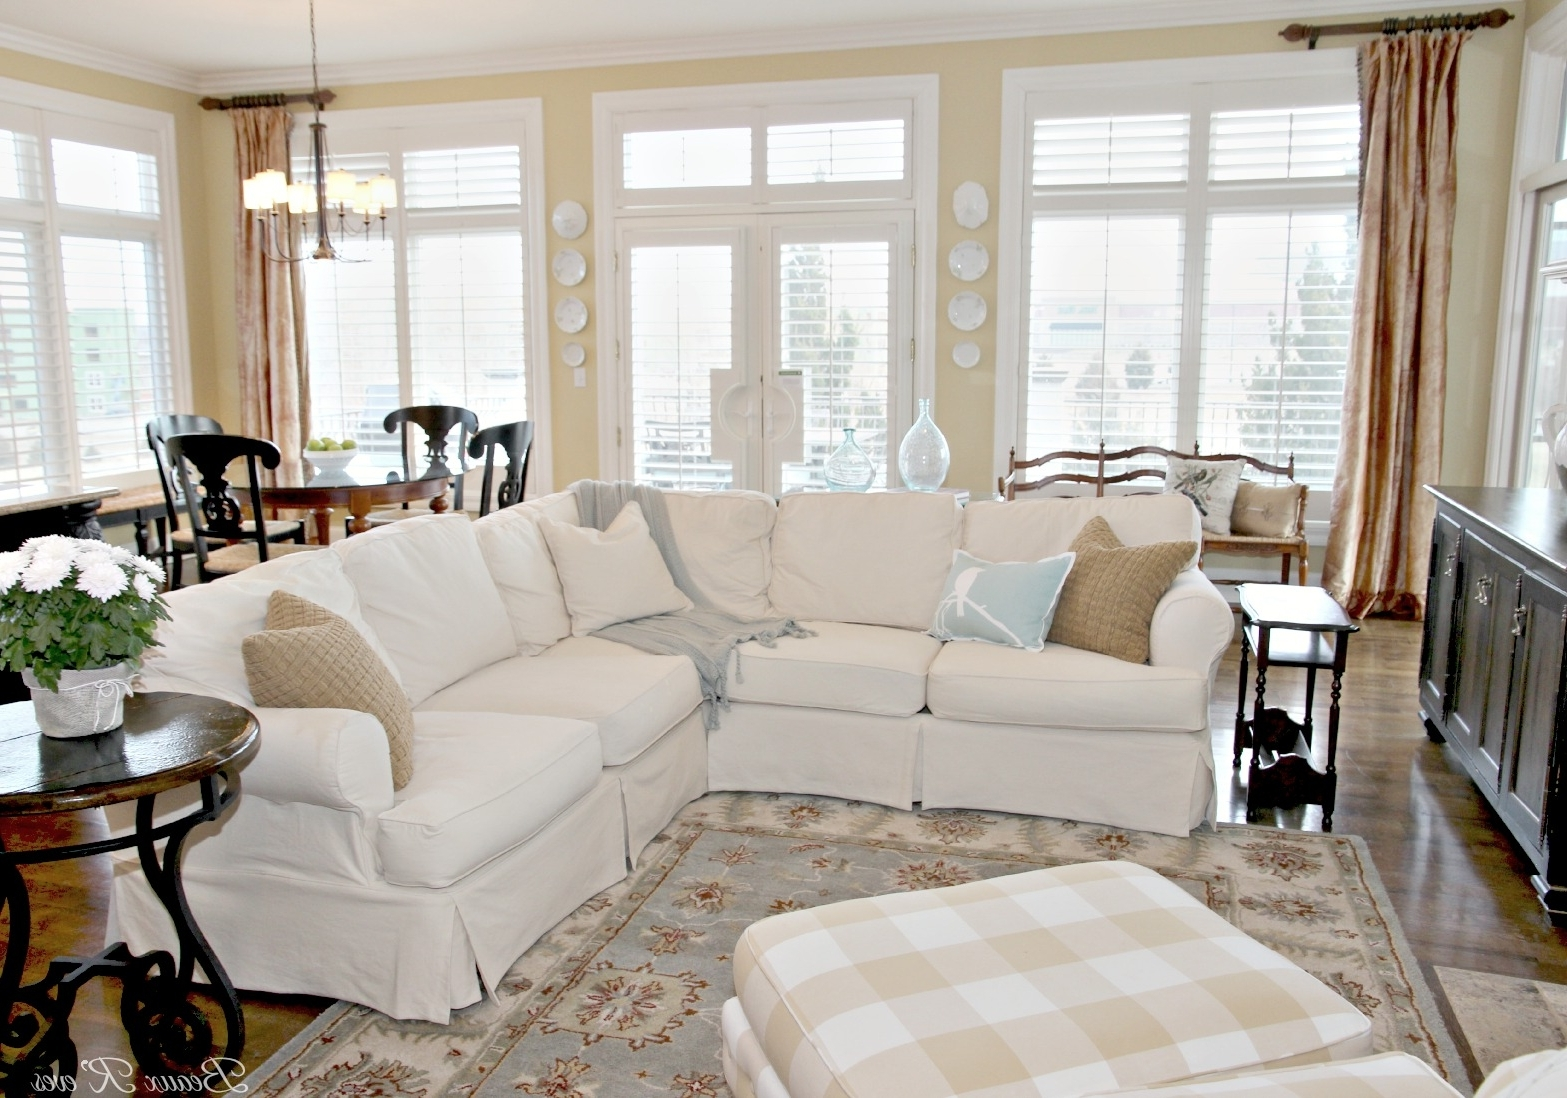 Slipcovered Sofas With Chaise Pertaining To Recent Beaux R'eves: Pottery Barn Knock Off Jcpenney Slipcovered (View 10 of 15)